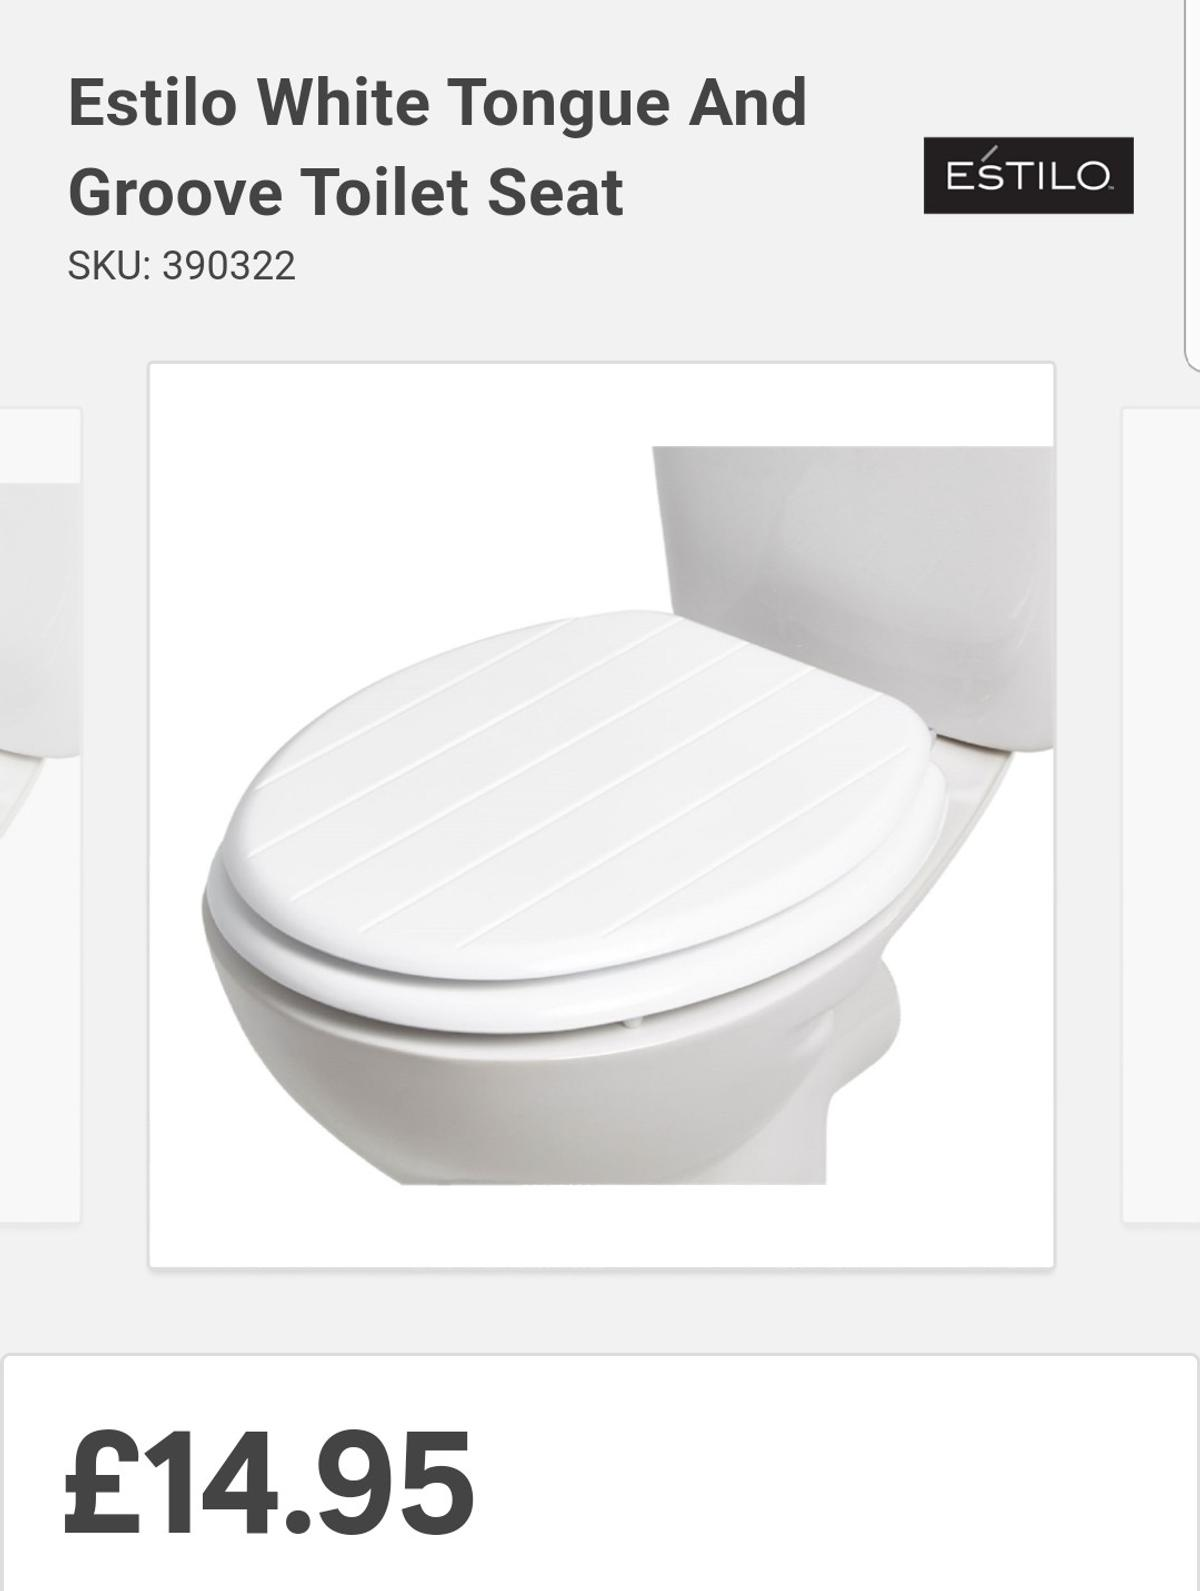 Estilo Grey Toilet Seat in WS12 Chase for £10 00 for sale